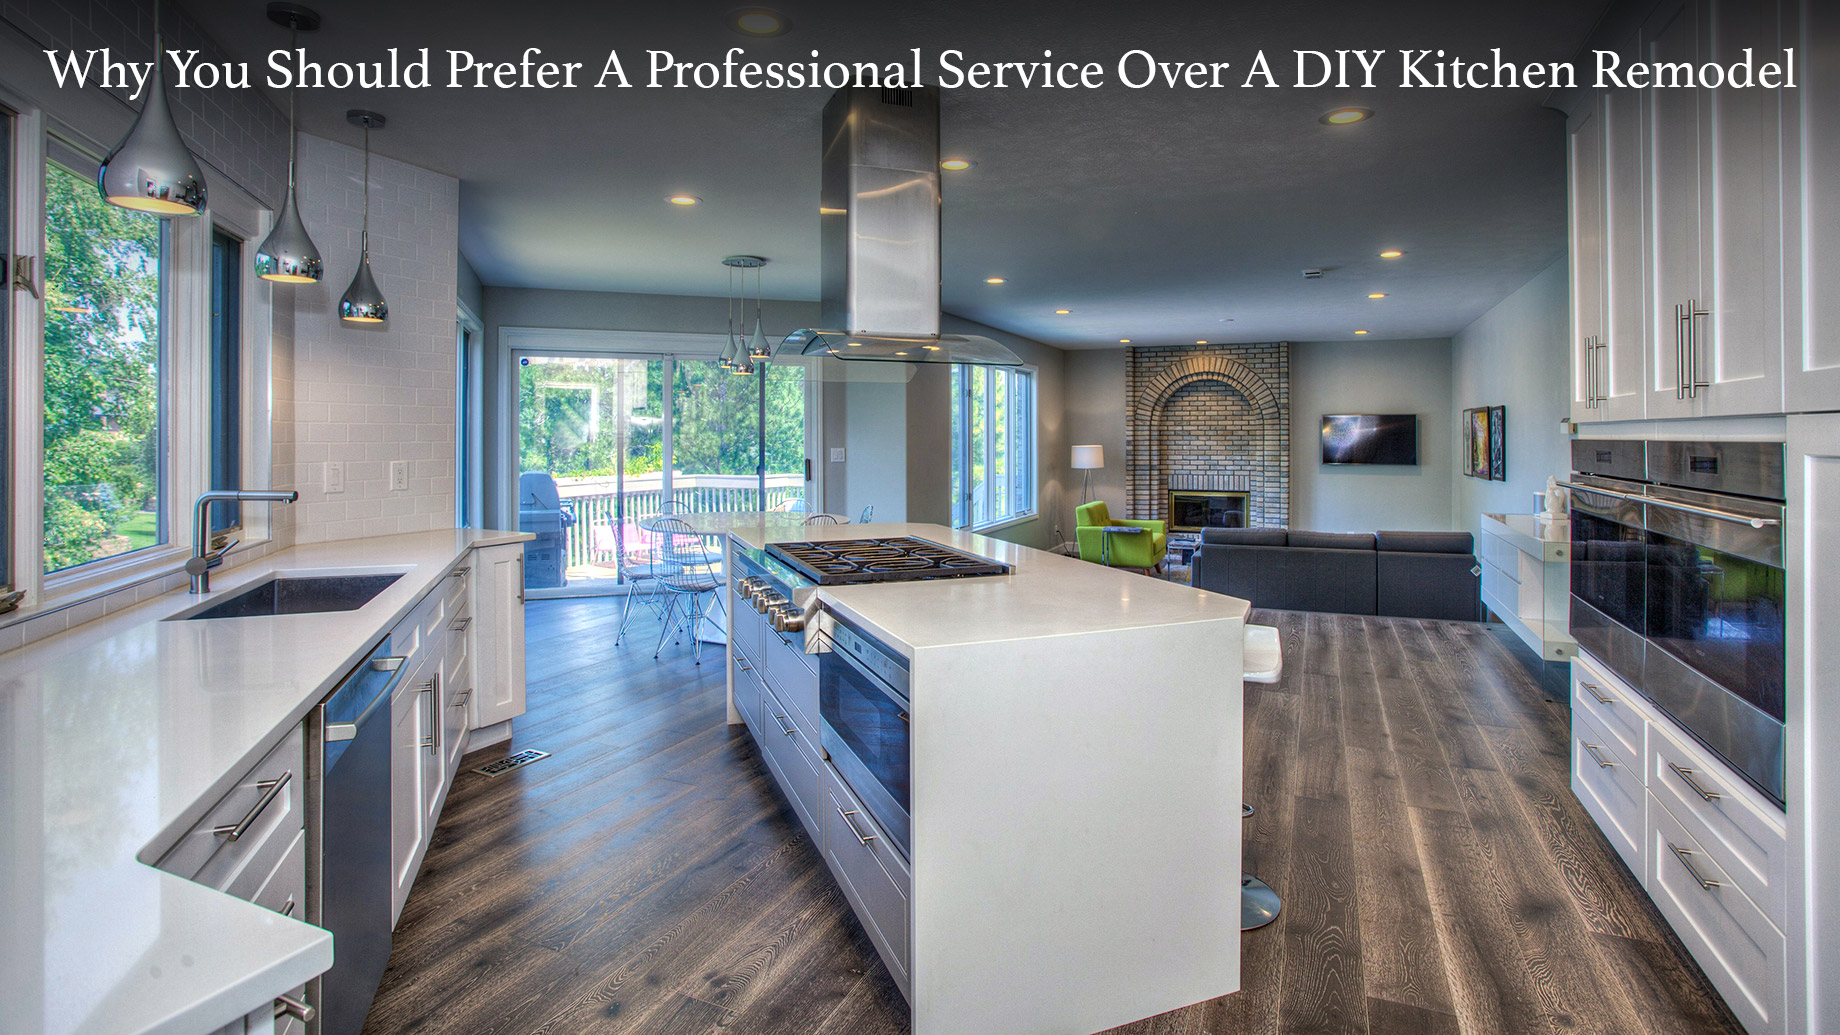 Why You Should Prefer A Professional Service Over A DIY Kitchen Remodel